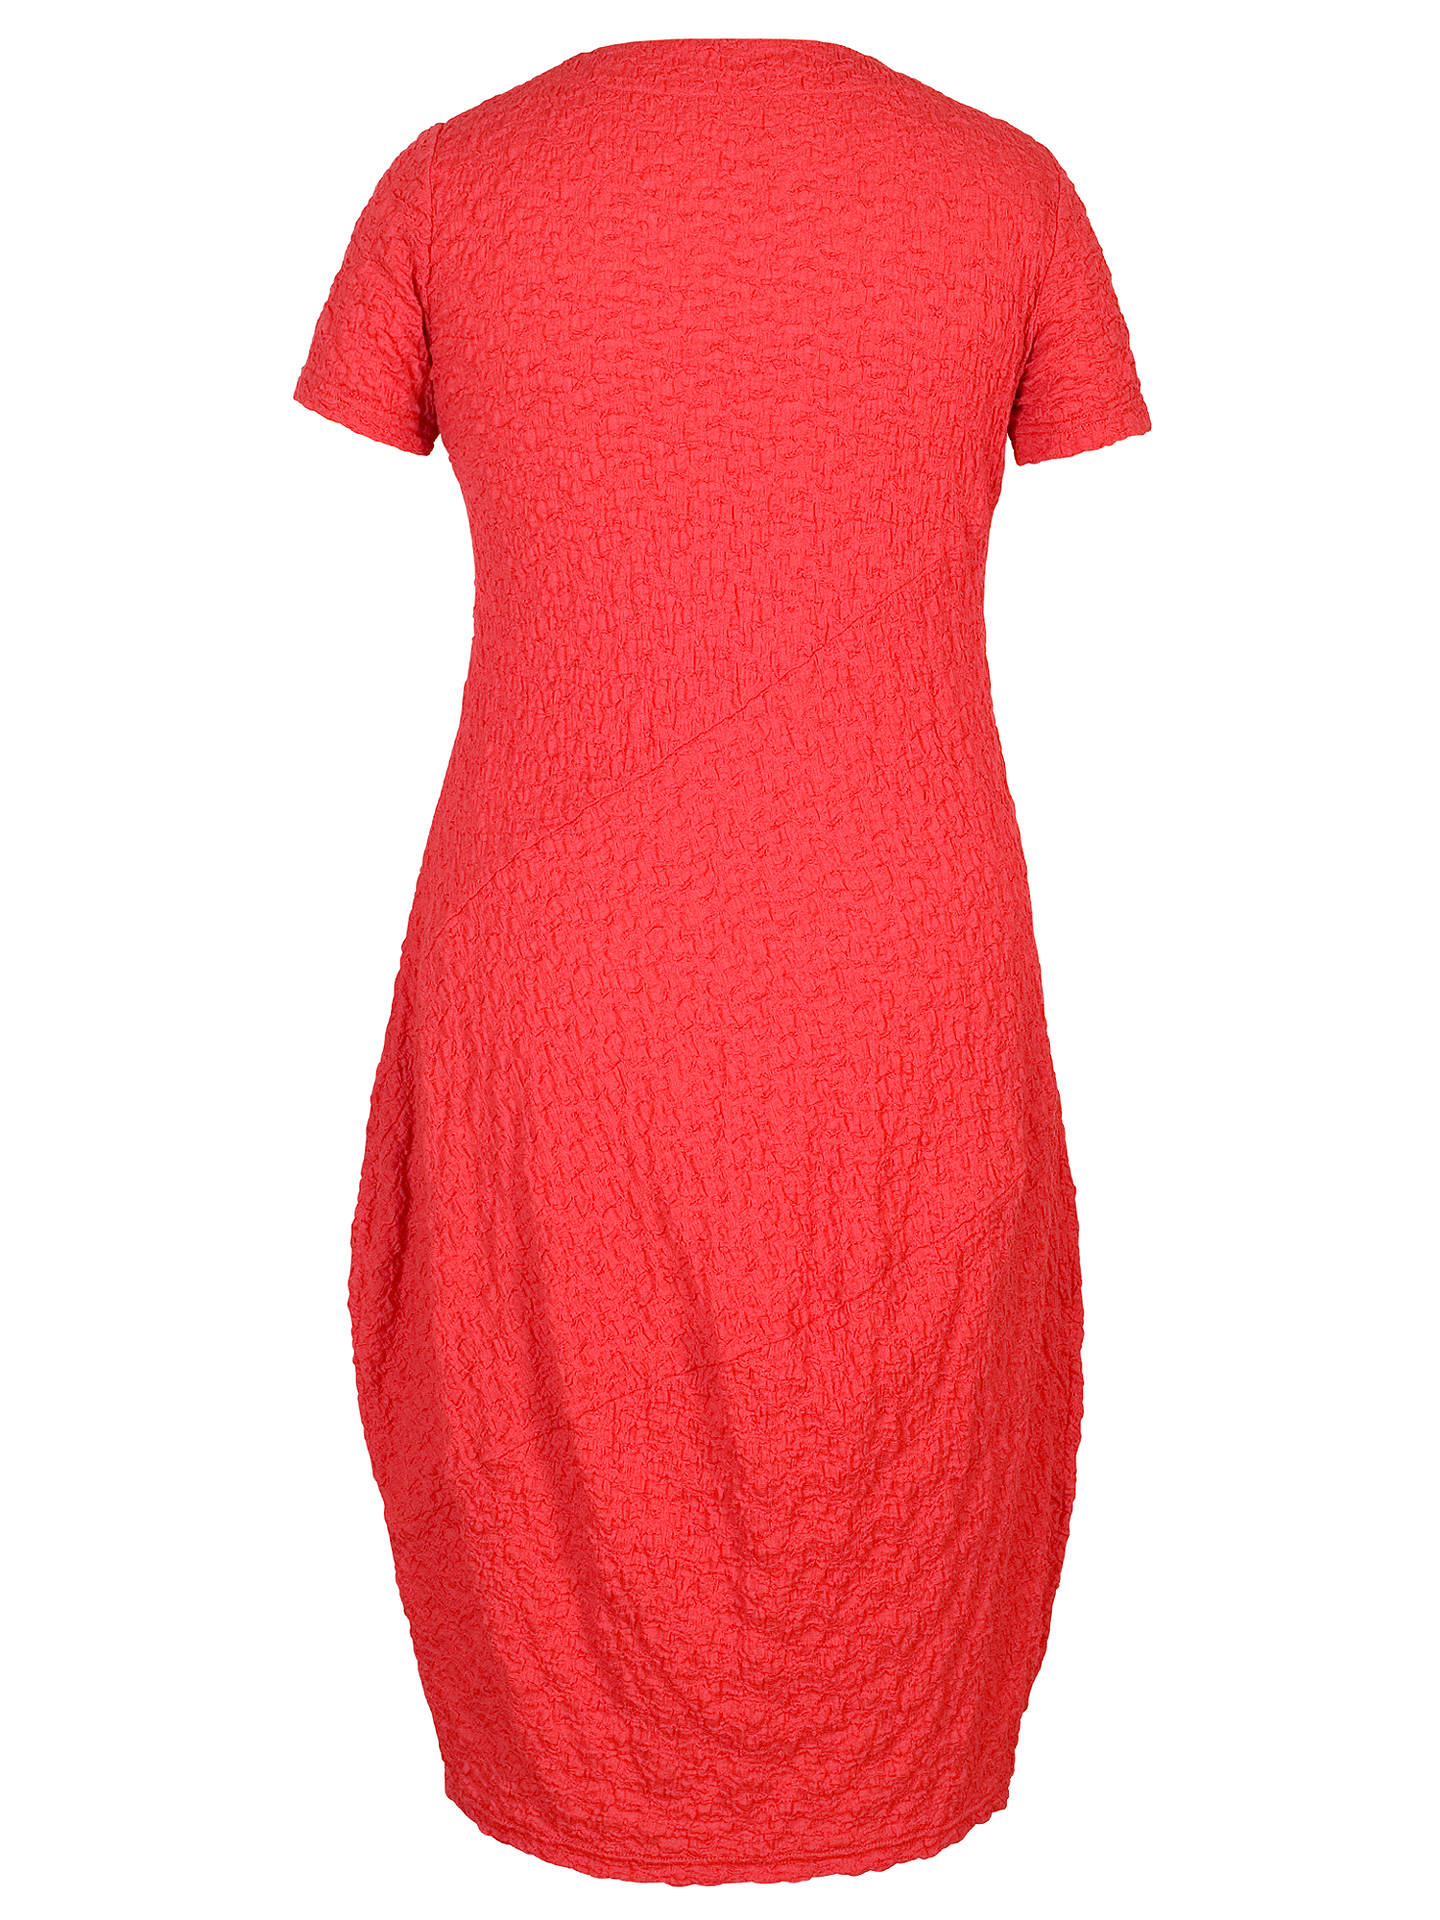 BuyChesca Asymmetric Neck Bubble Dress, Coral, 12-14 Online at johnlewis.com